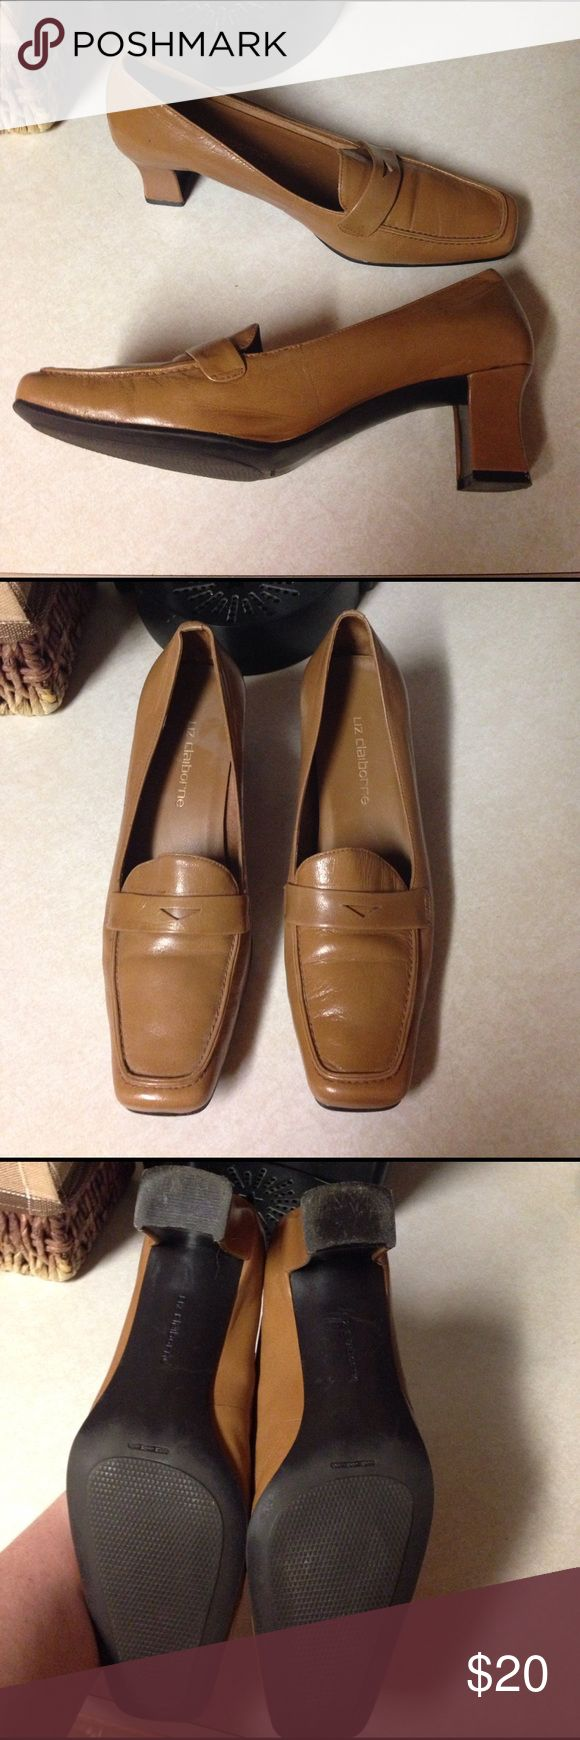 Liz Claiborne Heeled Loafers 6.5 M Milly Loafers by Liz Claiborne. These are a Caramel color with a low heel. Good to great condition Liz Claiborne Shoes Flats & Loafers